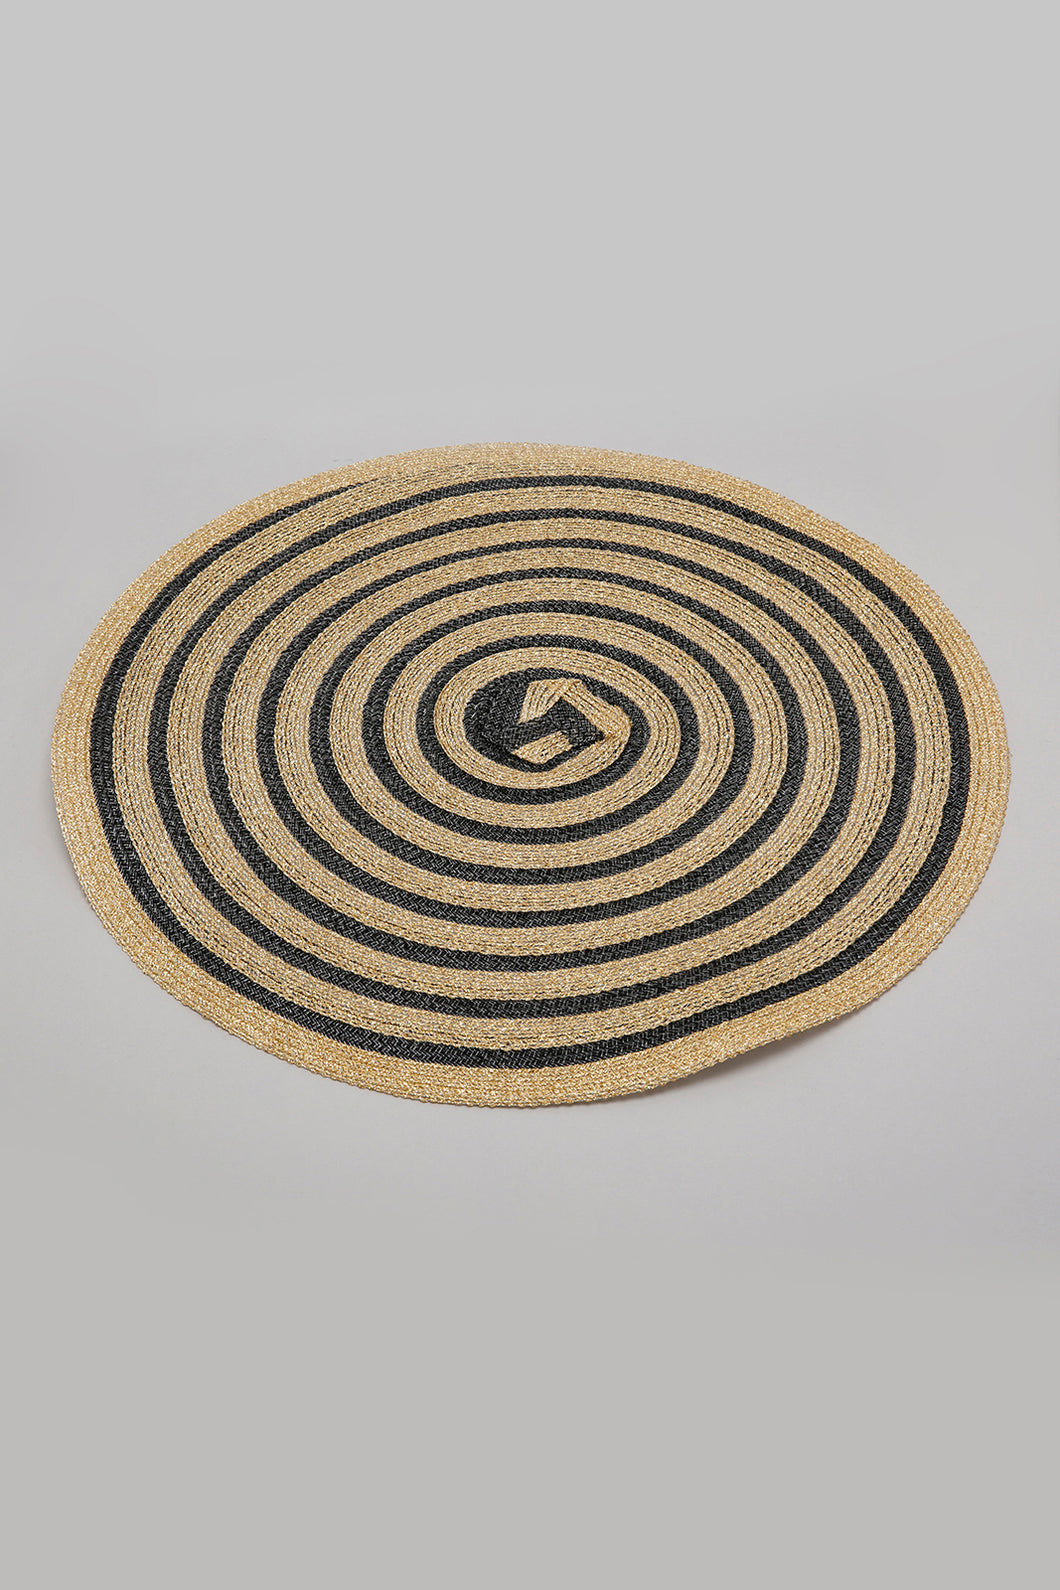 Gold/Black Round Woven Placemat